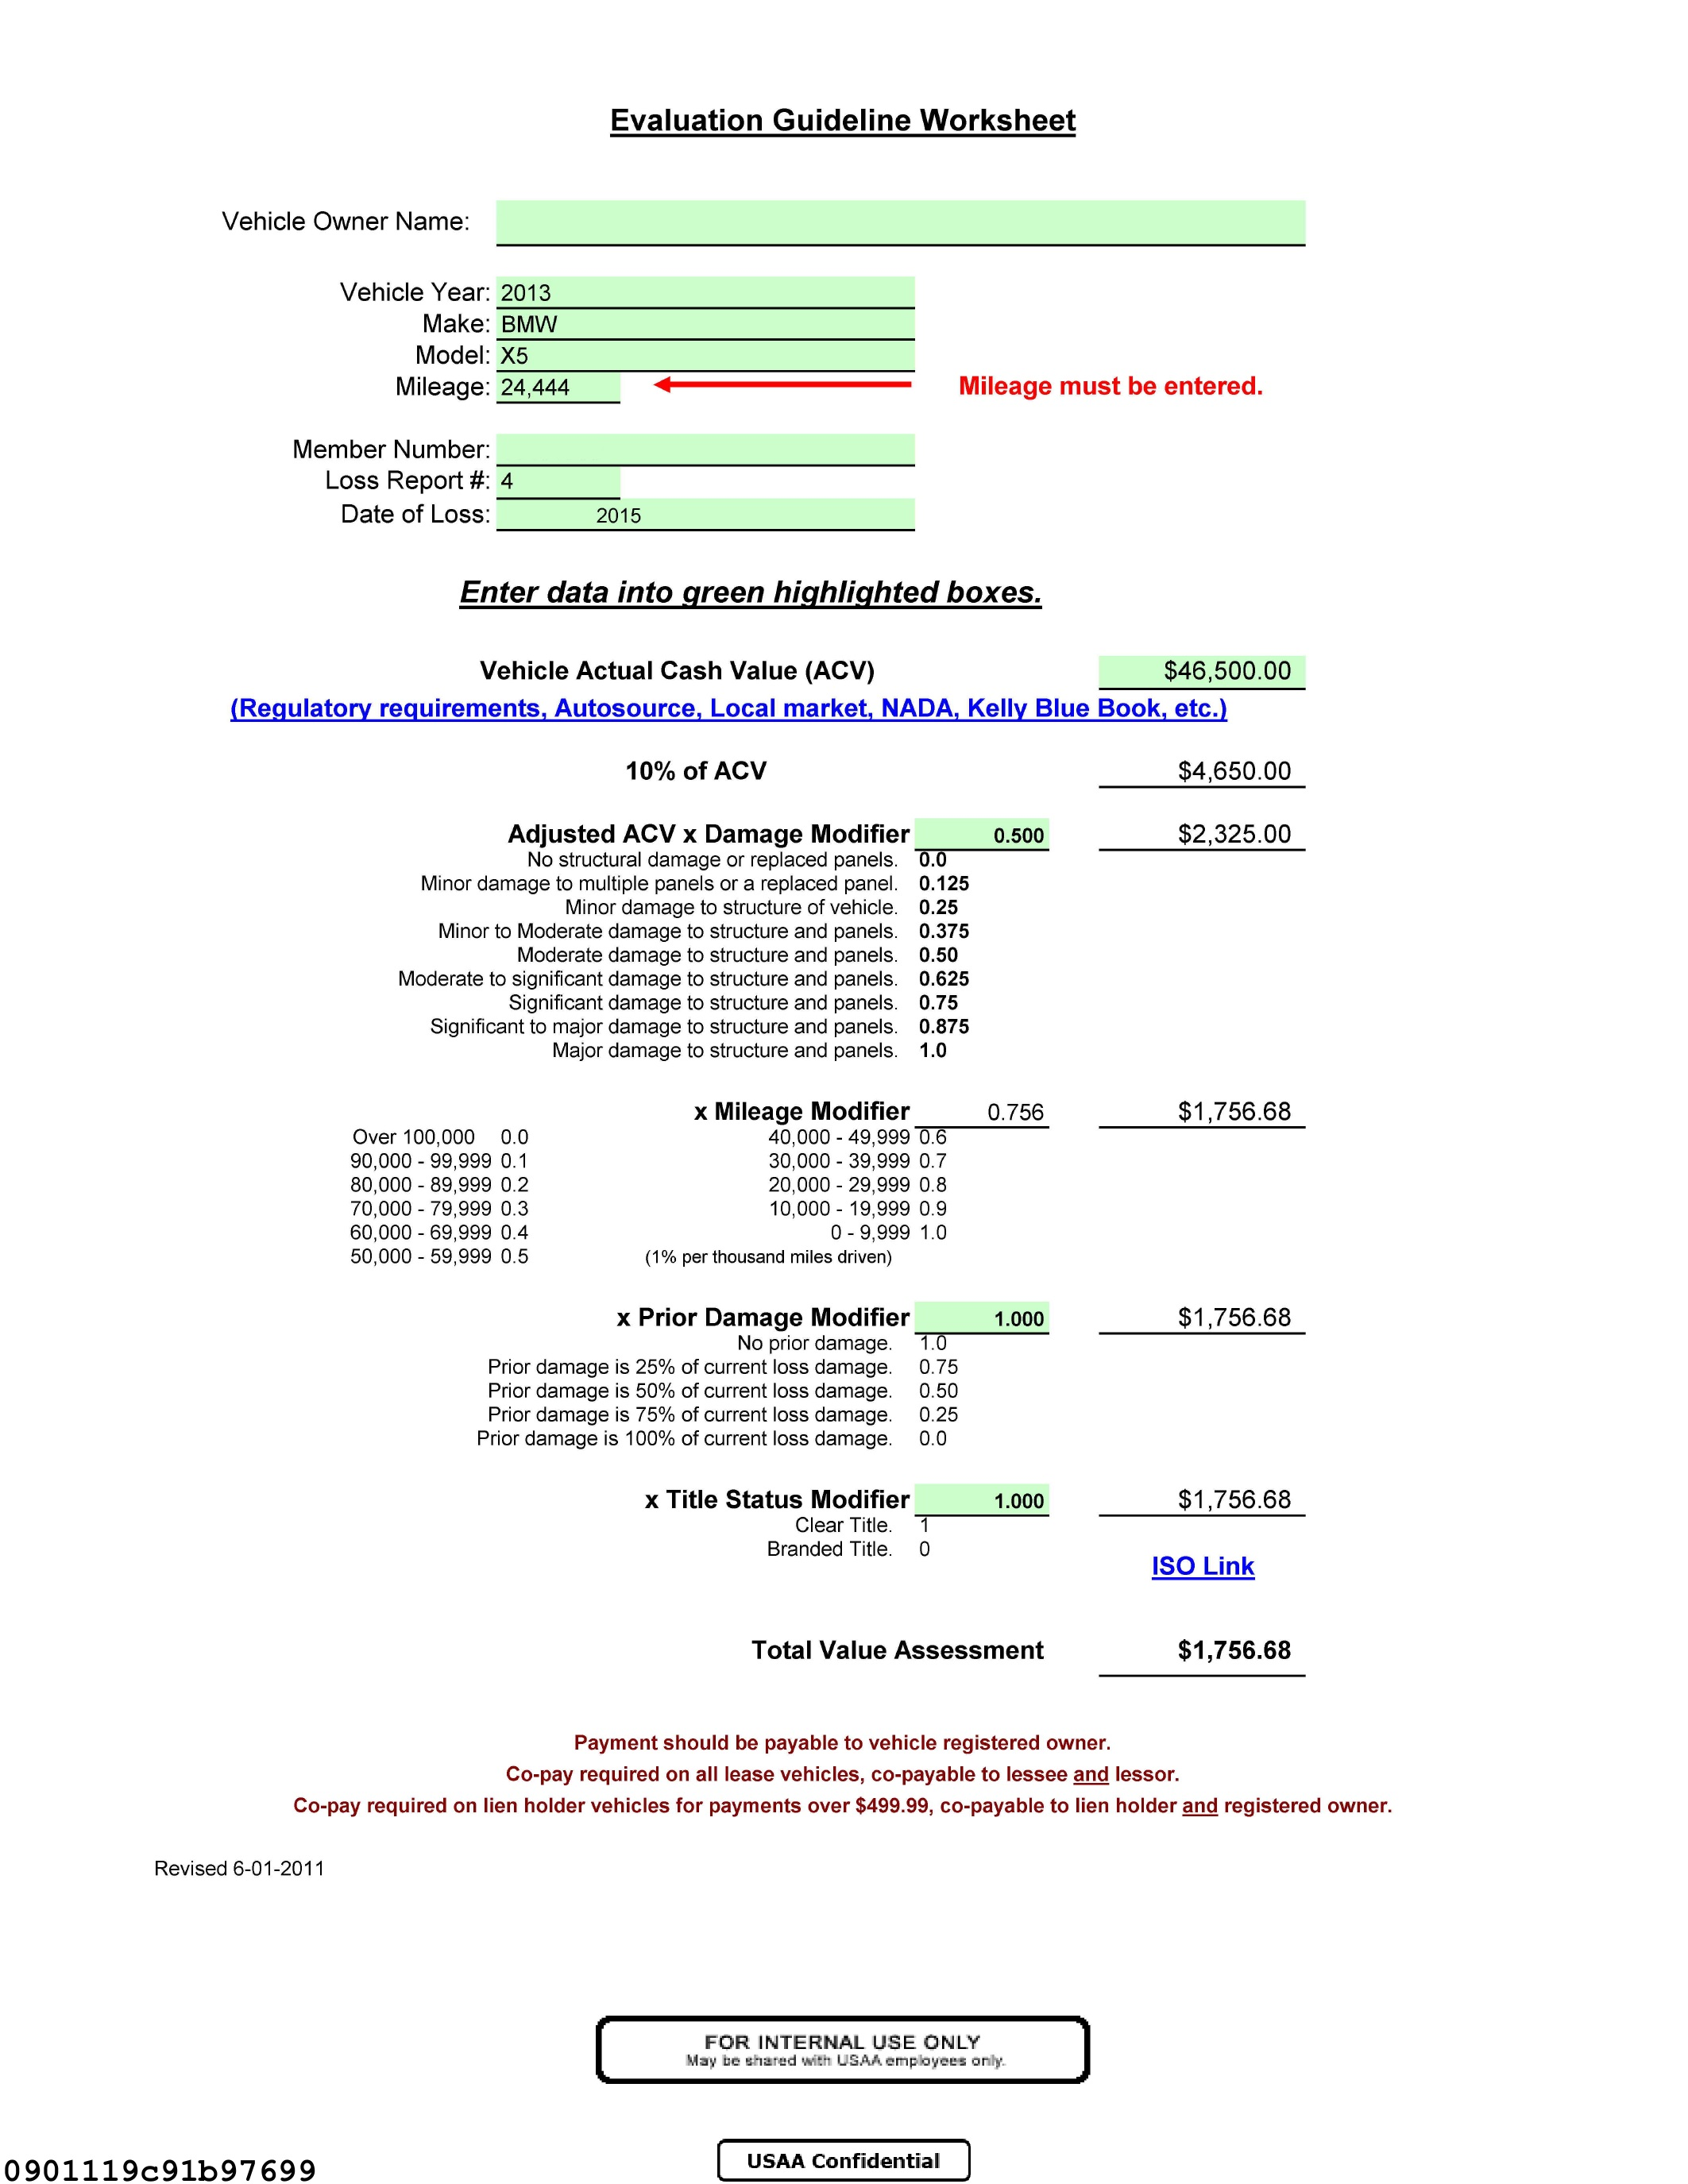 Worksheet Calculate Value